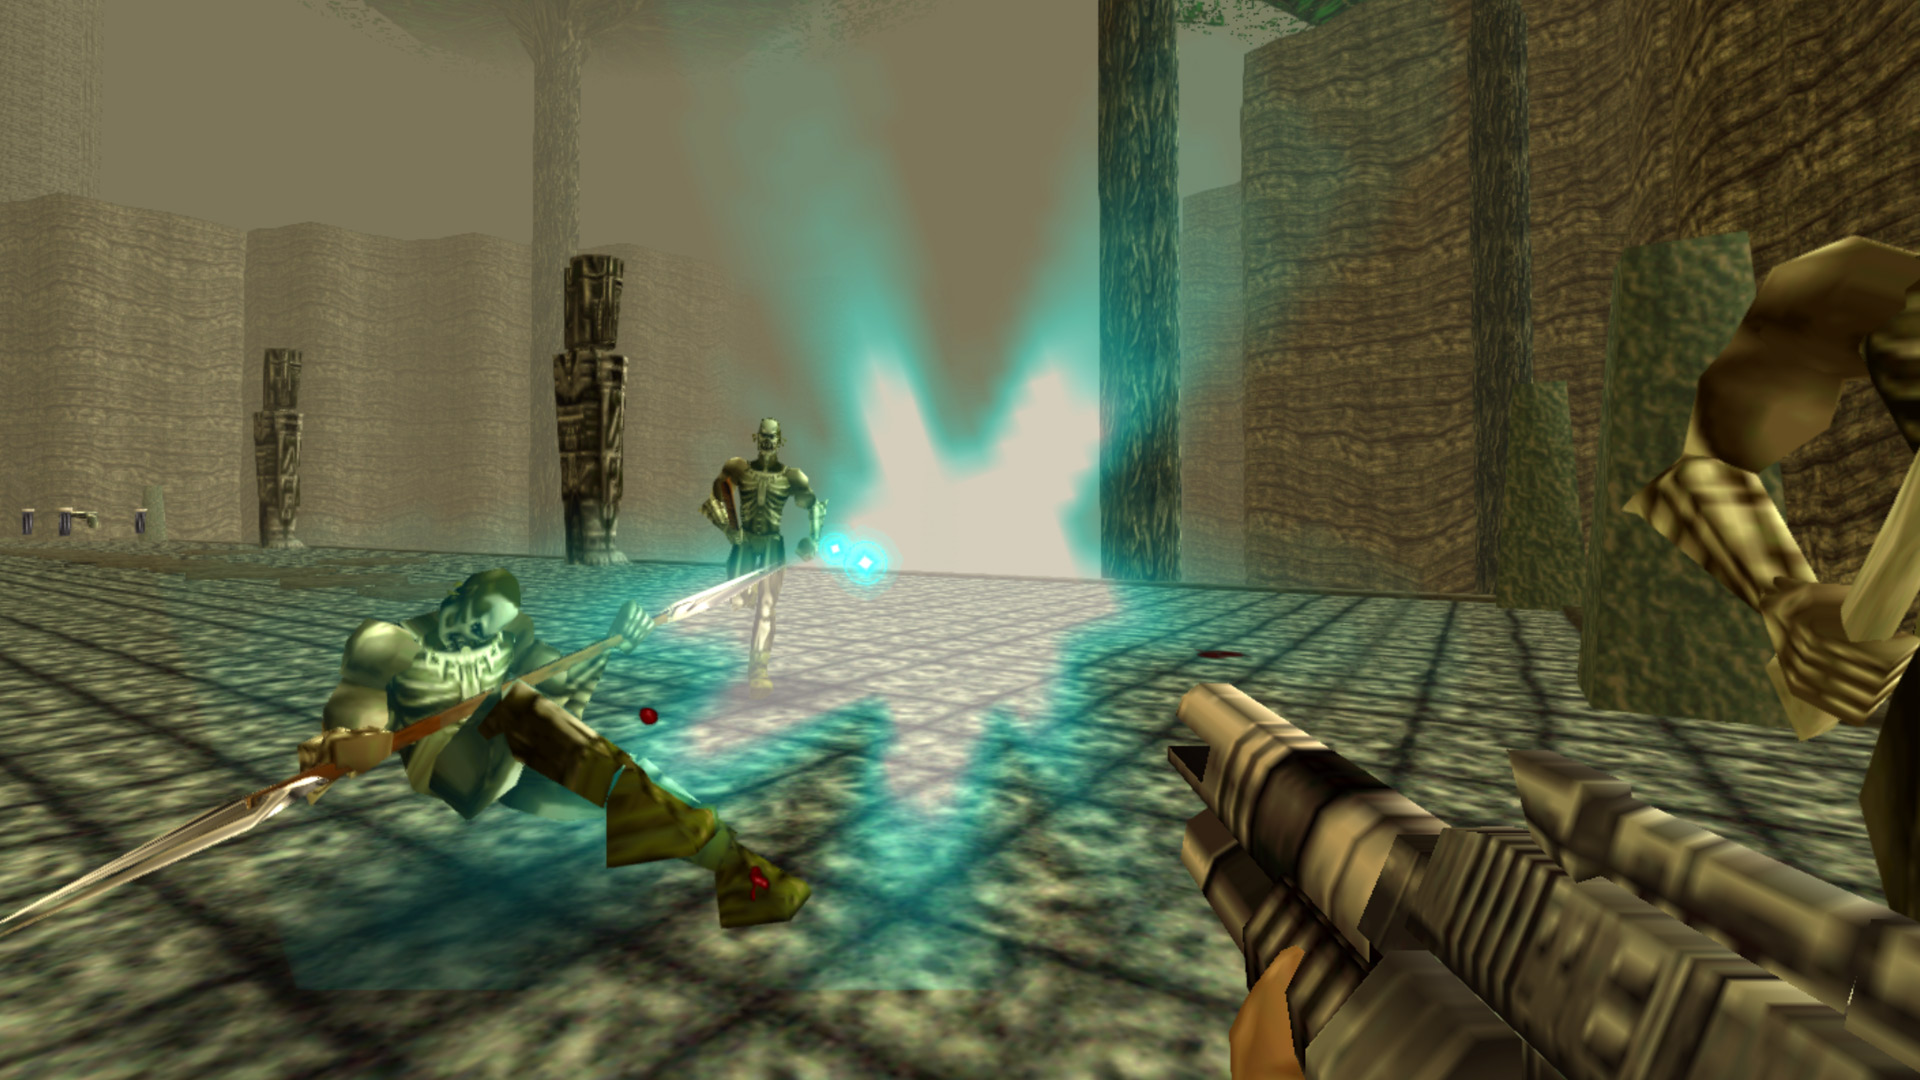 Turok: Remastered PC